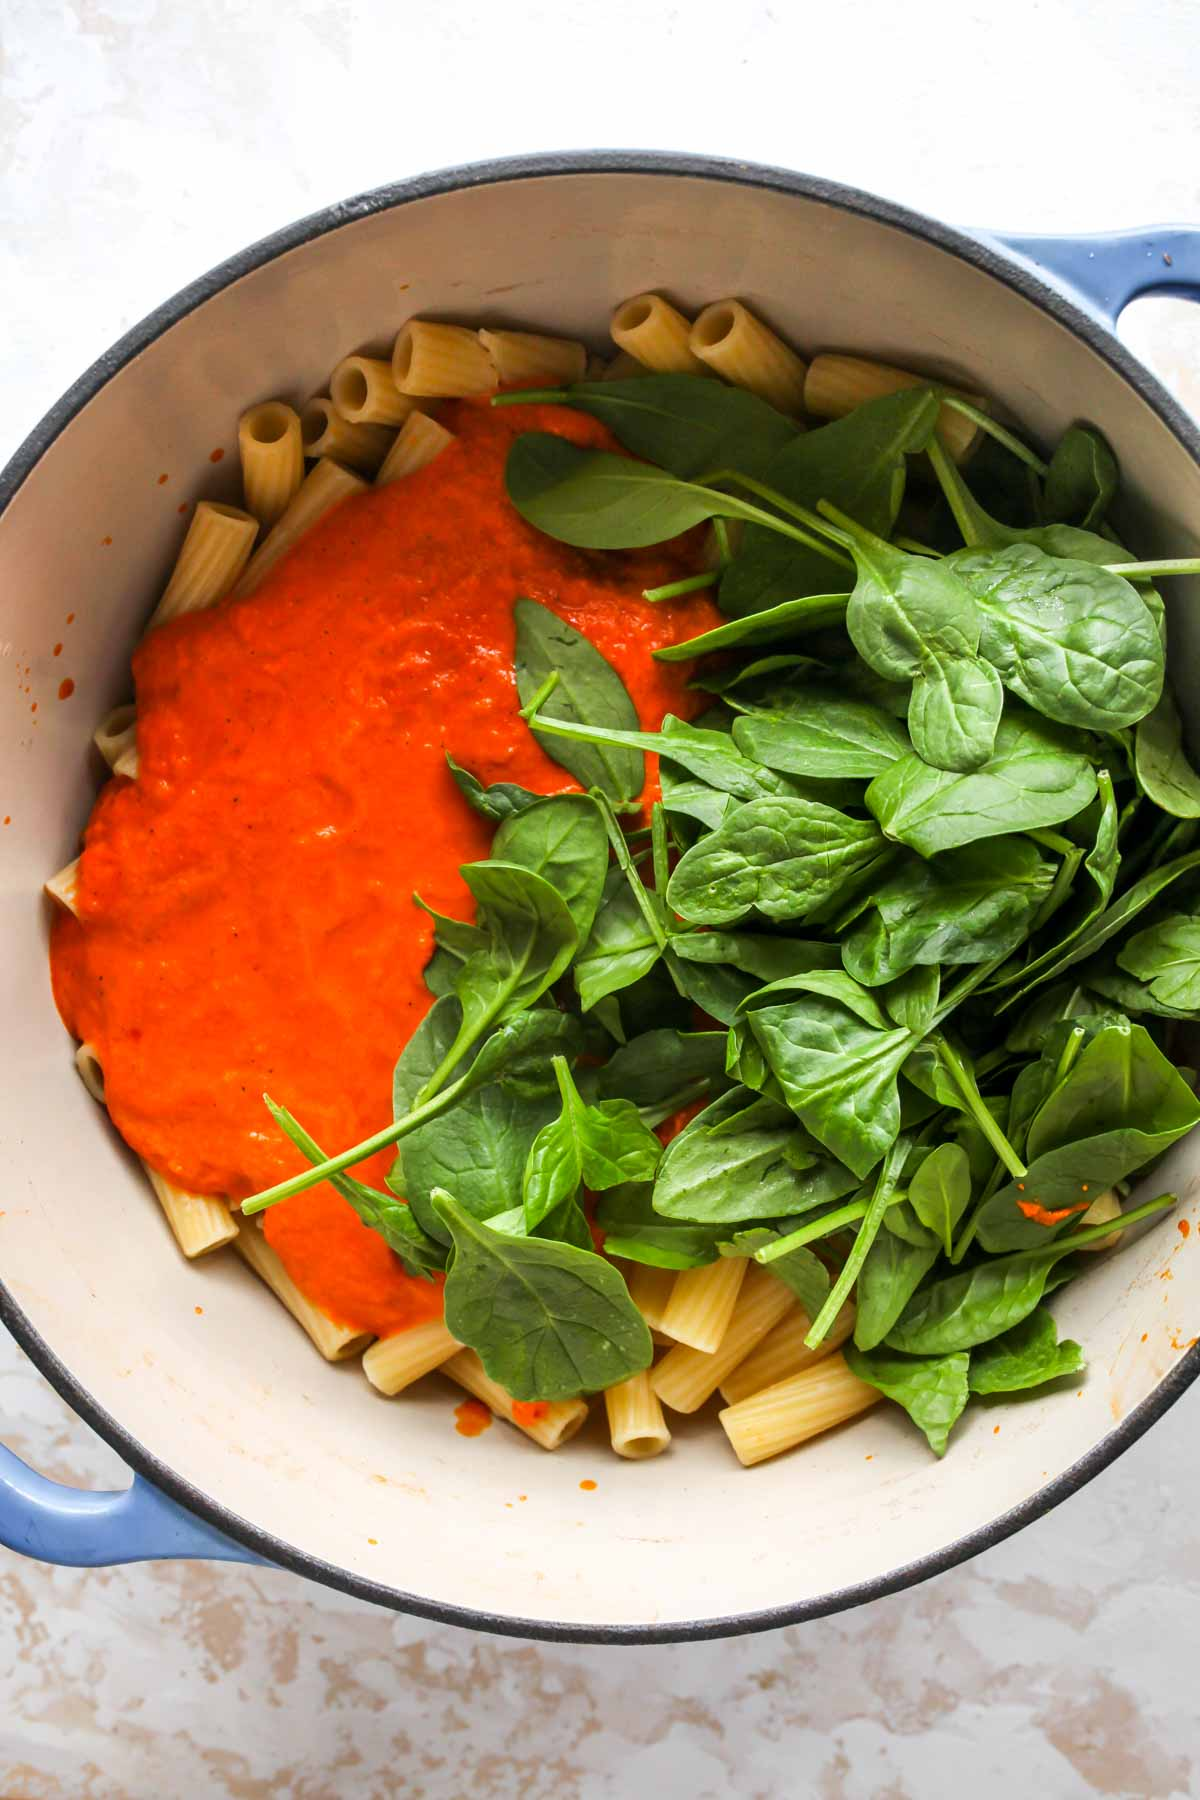 Rigatoni, spinach, and red pepper sauce being mixed in a large pot